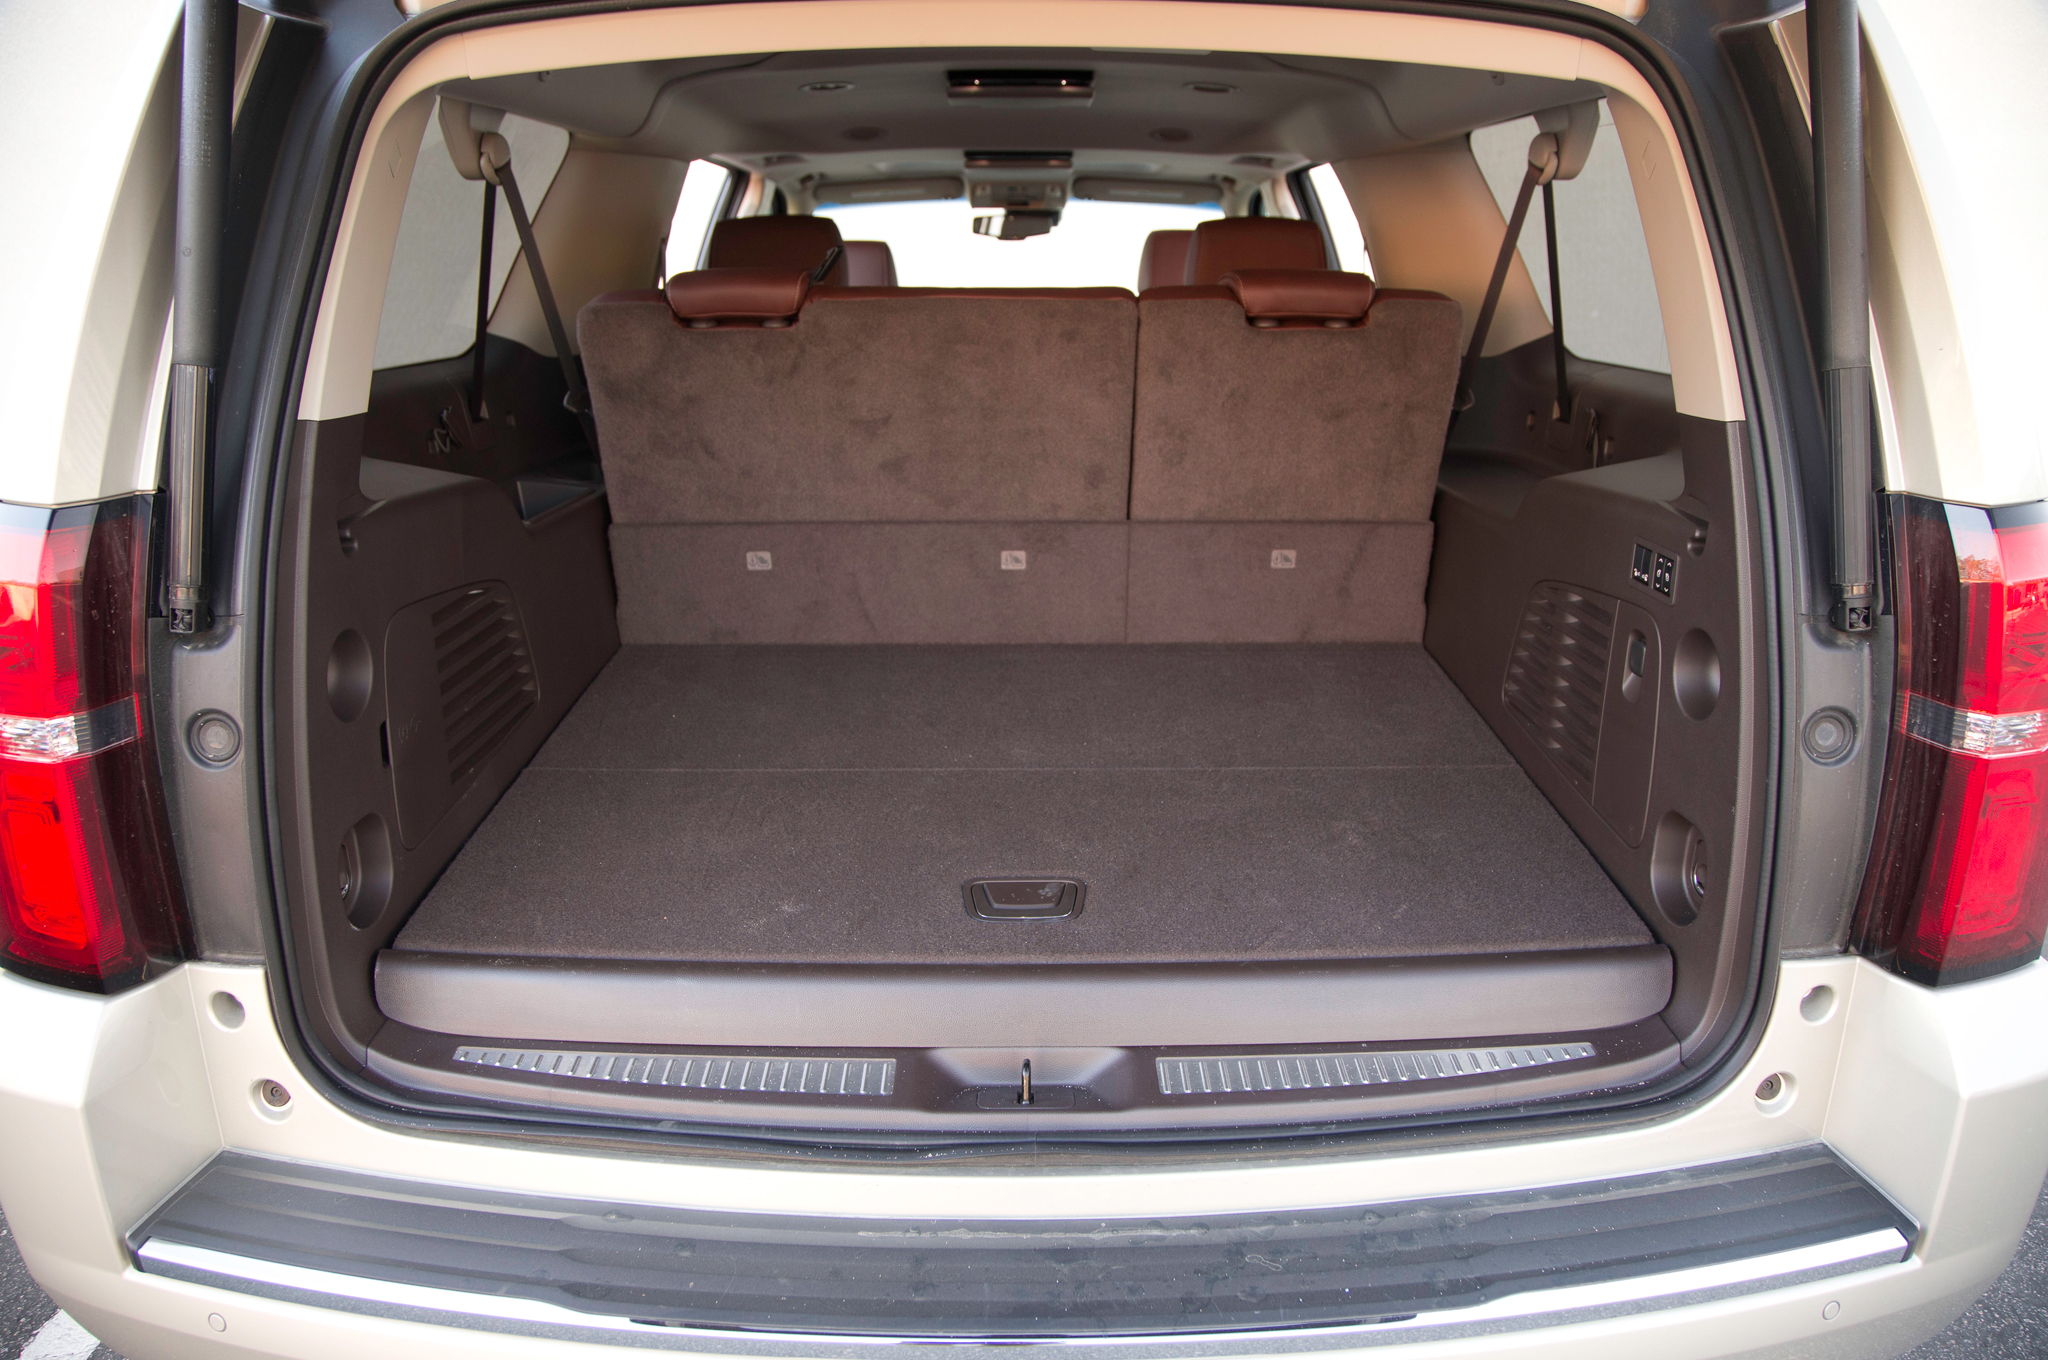 2015 Chevrolet Suburban Rear Cabin (Photo 32 of 33)